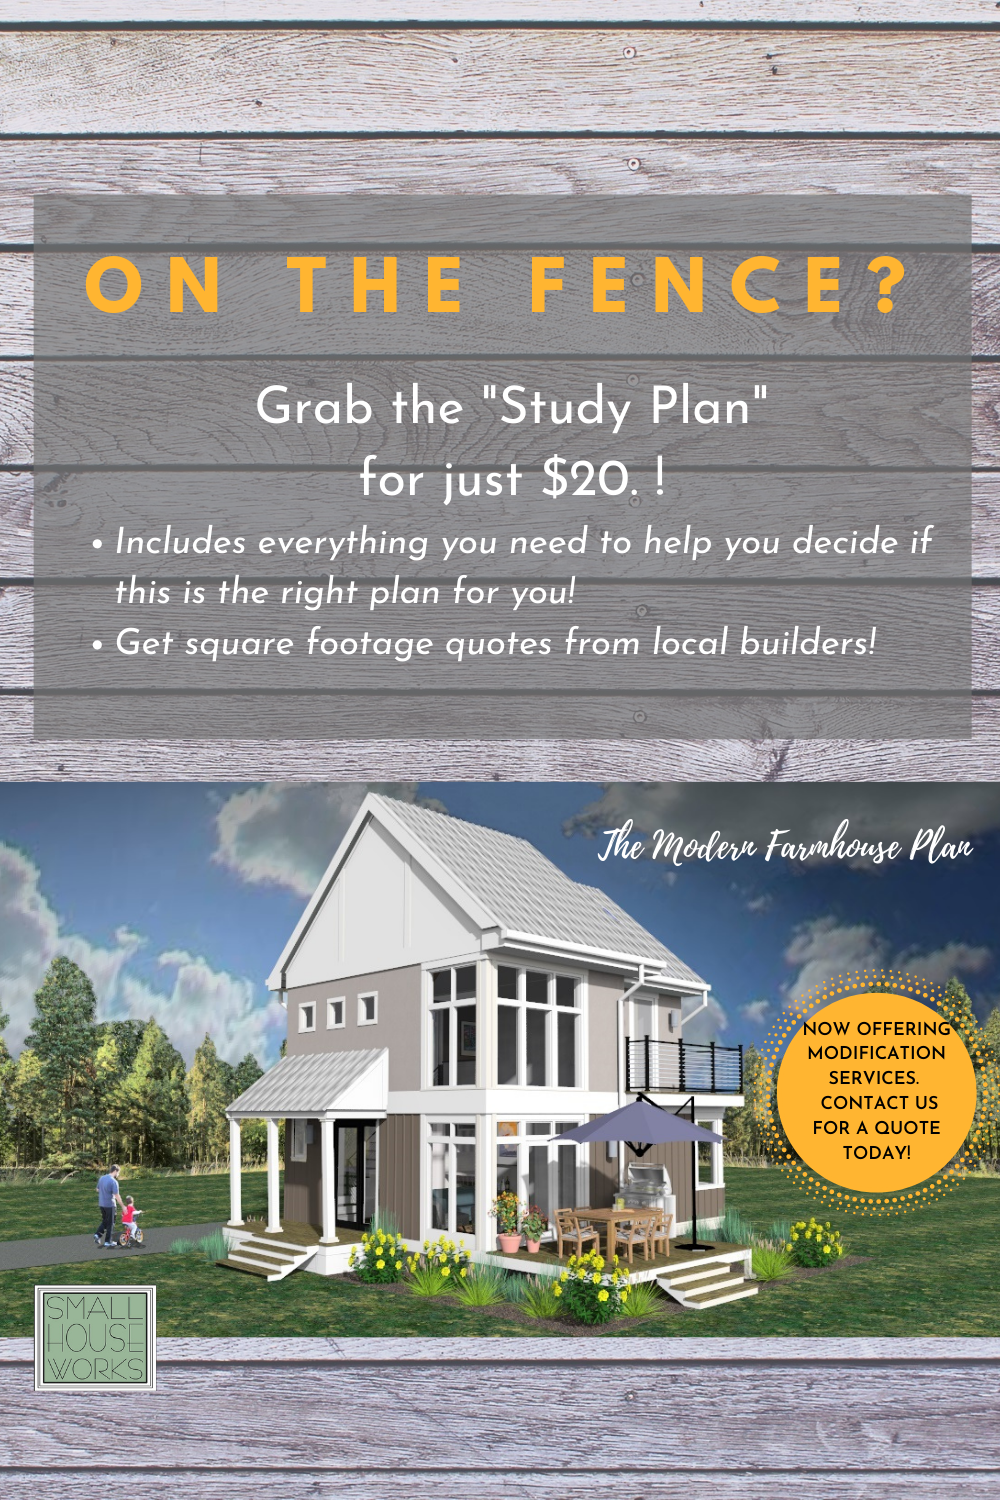 flyer for the modern farmhouse. text reads: on the fence? grab the study plan for just $20. flyer includes a 3d rendering of the modern farmhouse plan exterior and a note that modification services are now offered. contact us for a quote.